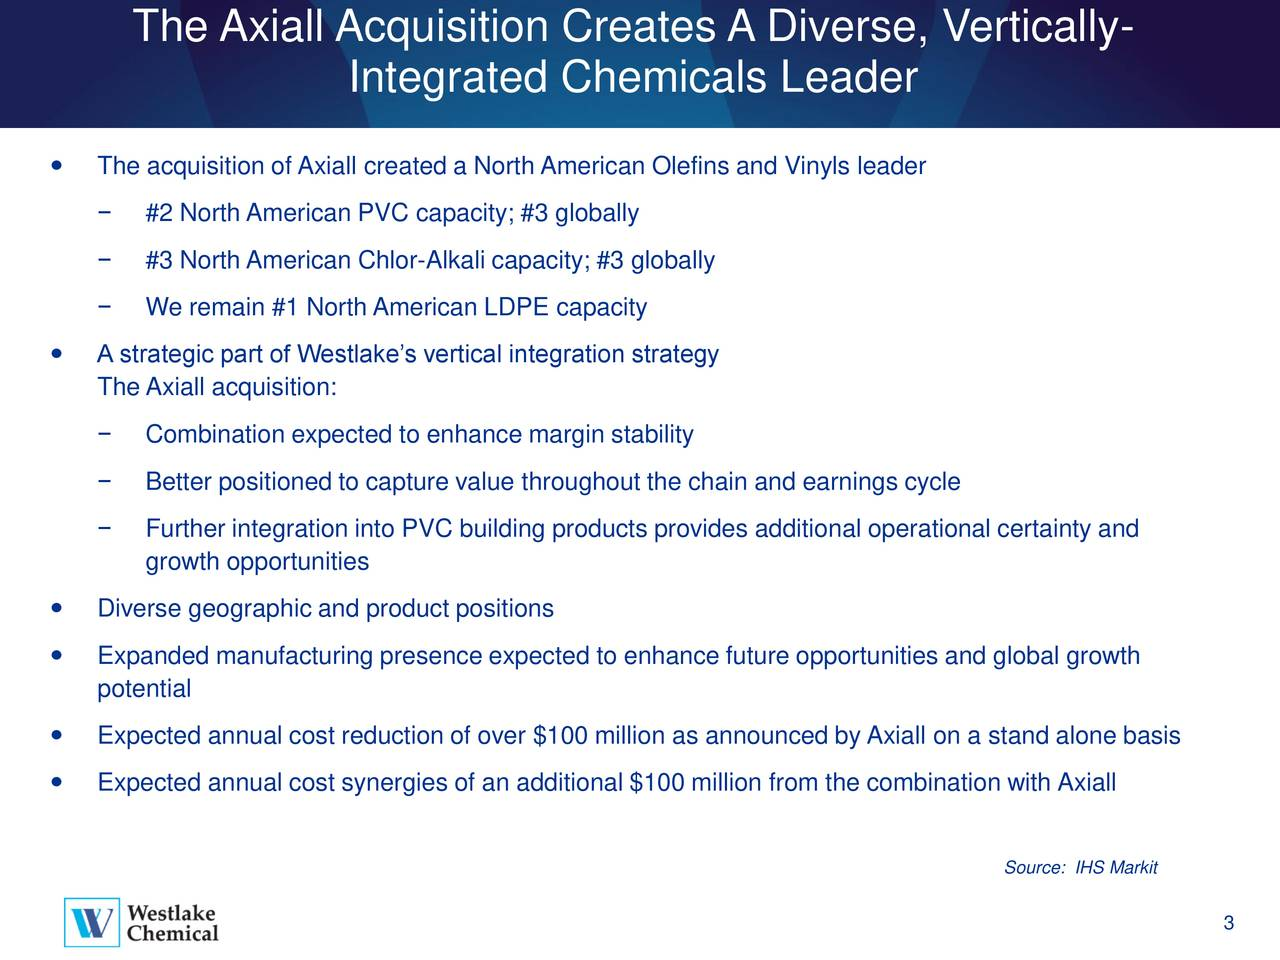 Integrated Chemicals Leader The acquisition of Axiall created a North American Olefins and Vinyls leader #2 North American PVC capacity; #3 globally #3 North American Chlor-Alkali capacity; #3 globally We remain #1 North American LDPE capacity A strategic part of Westlakes vertical integration strategy The Axiall acquisition: Combination expected to enhance margin stability Better positioned to capture value throughout the chain and earnings cycle Further integration into PVC building products provides additional operational certainty and growth opportunities Diverse geographic and product positions Expanded manufacturing presence expected to enhance future opportunities and global growth potential Expected annual cost reduction of over $100 million as announced by Axiall on a stand alone basis Expected annual cost synergies of an additional $100 million from the combination with Axiall Source: IHS Markit 3